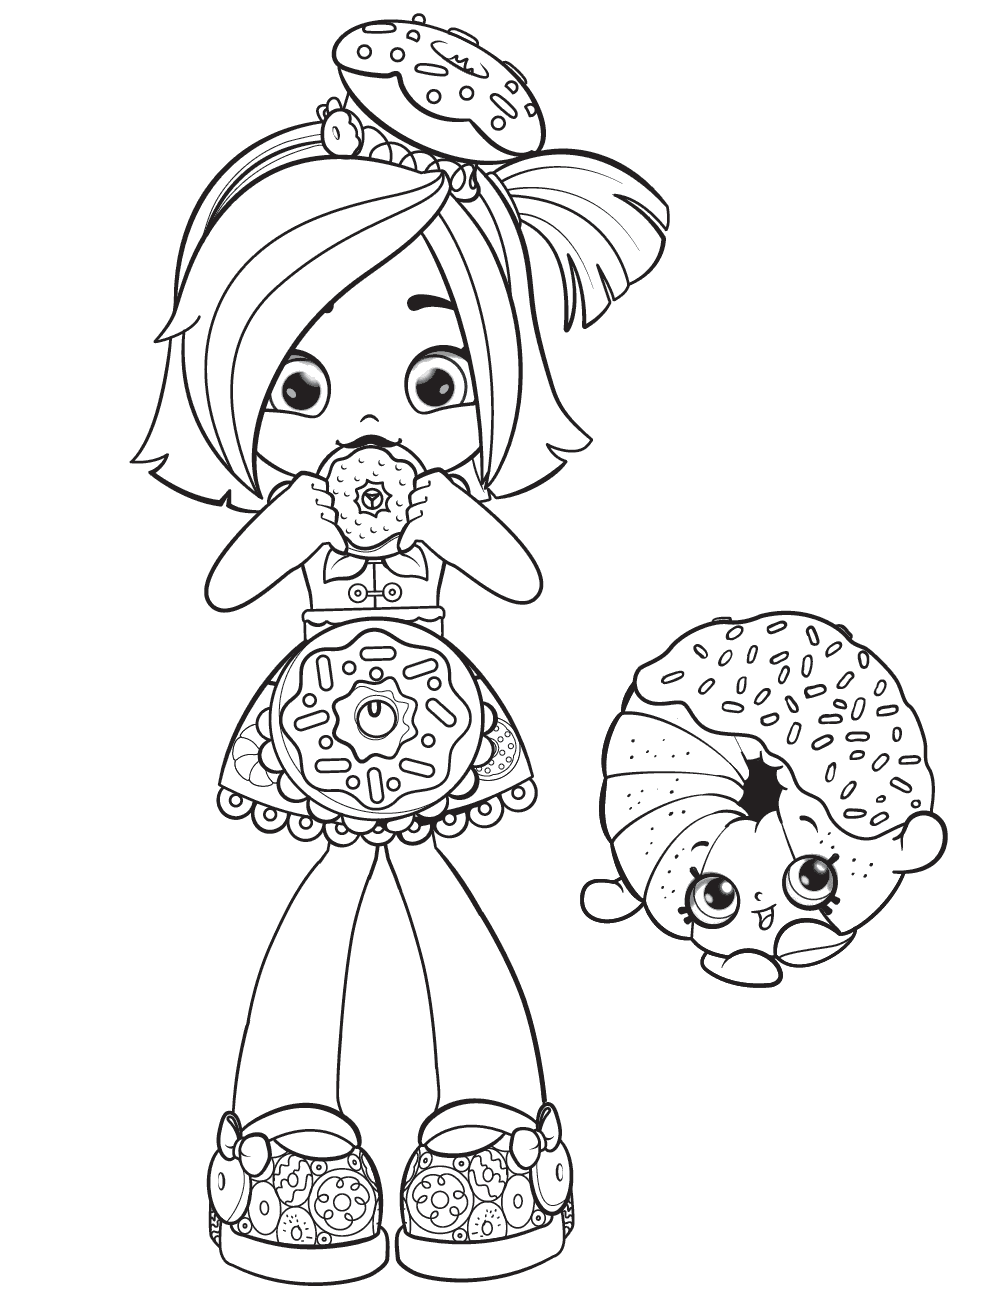 Donatina -Shoppies Coloring Pages